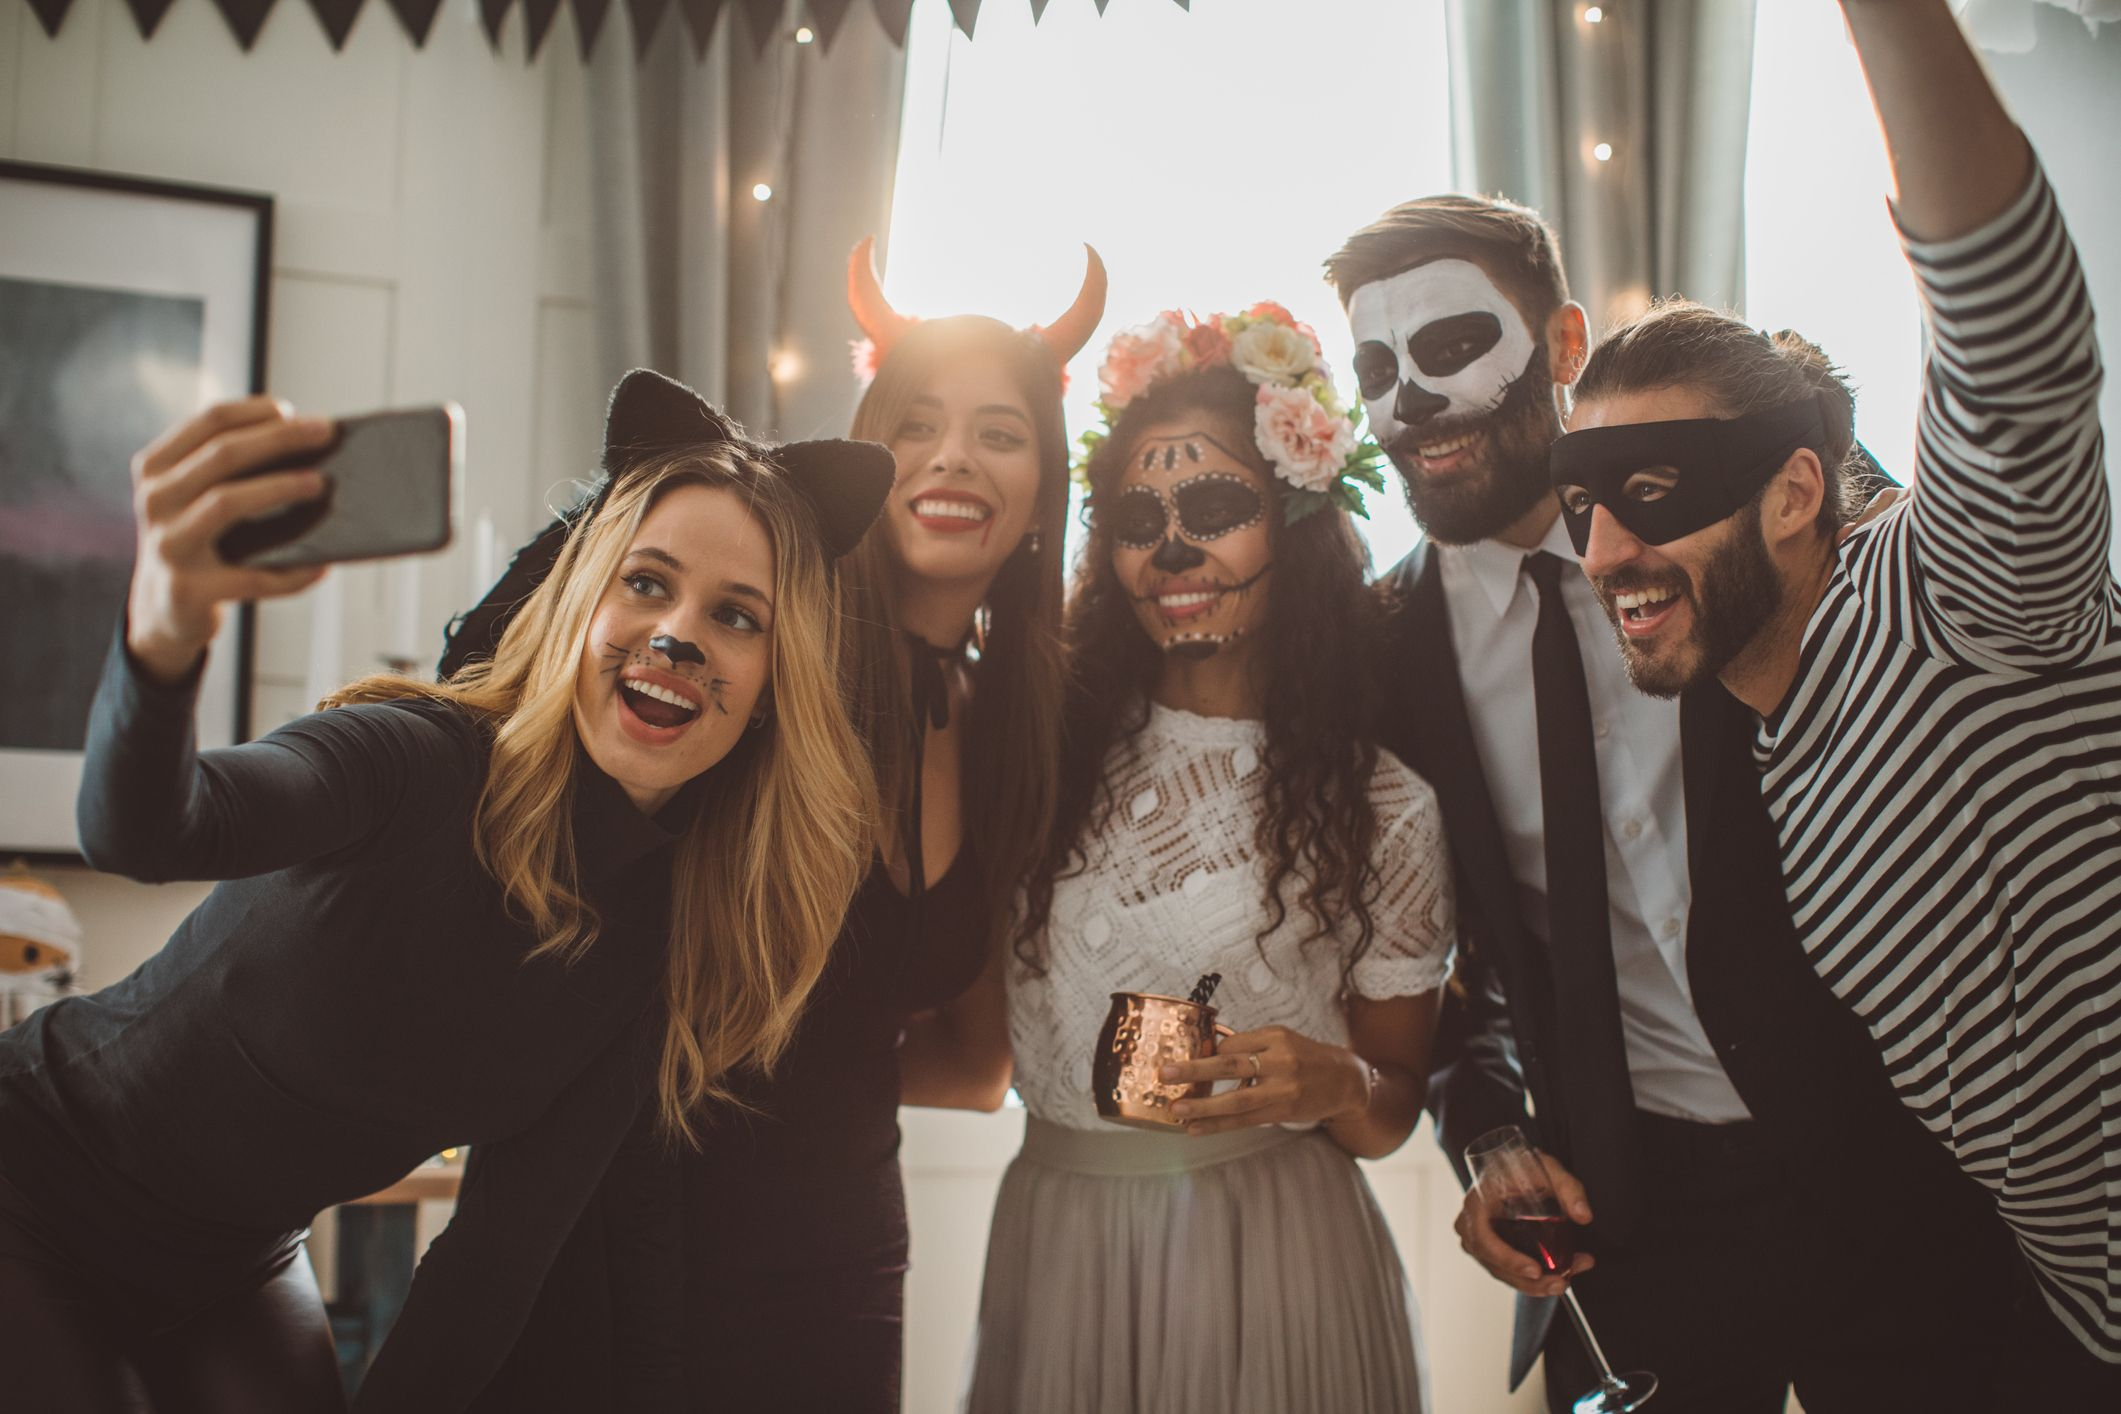 Many of the offers appearing on this. 80 Best Couples Halloween Costumes 2021 Cute And Funny Costumes